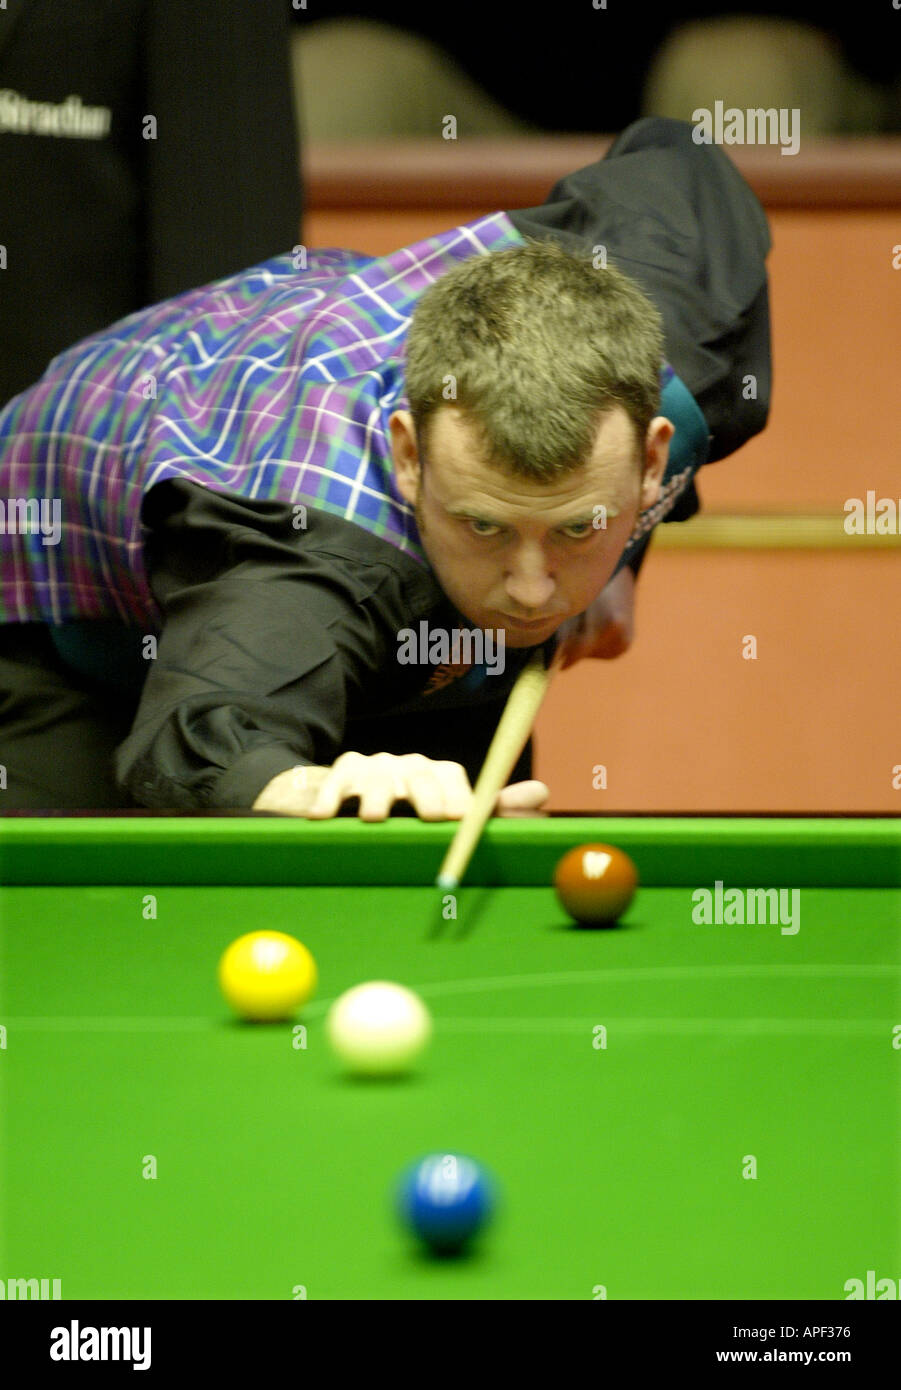 Mark Williams playing in the 2004 World Snooker Championships at the Crucible Theatre Sheffield - Stock Image